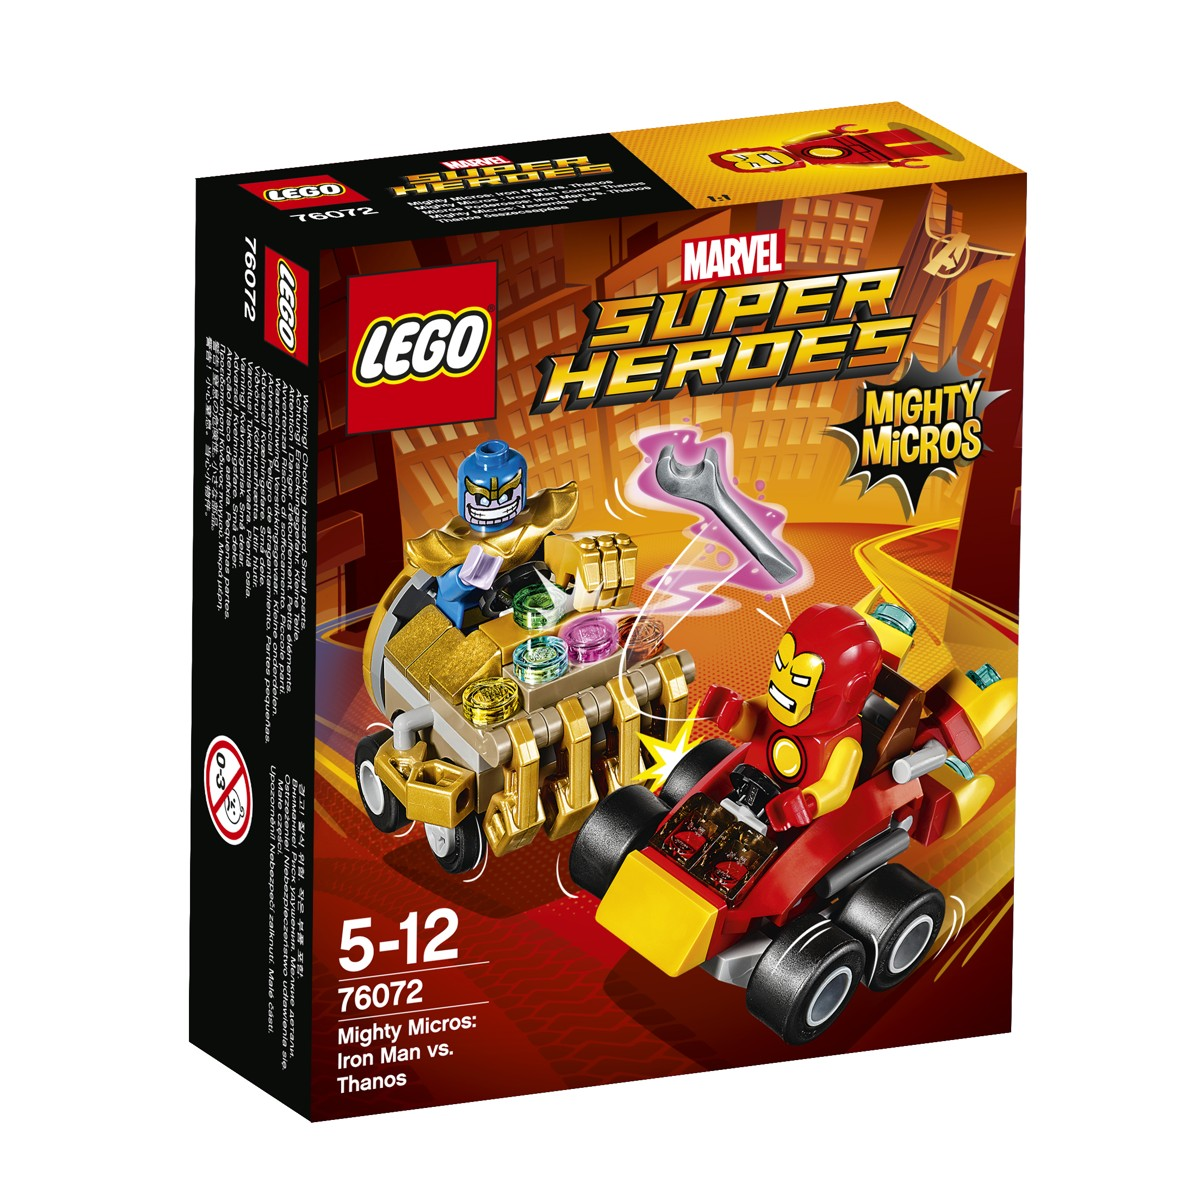 LEGO® Marvel Super Heroes 76072 Mighty Micros: Iron Man vs. Thanos